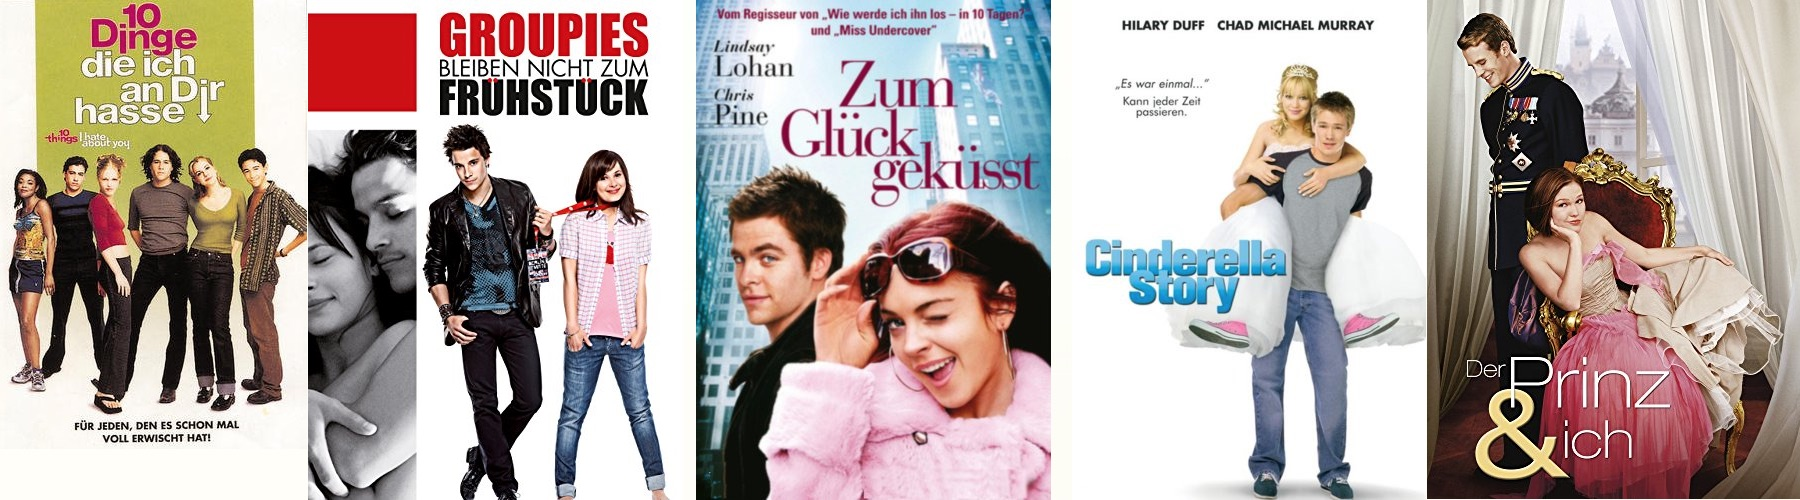 Romantische Teenagerfilme - Top 10